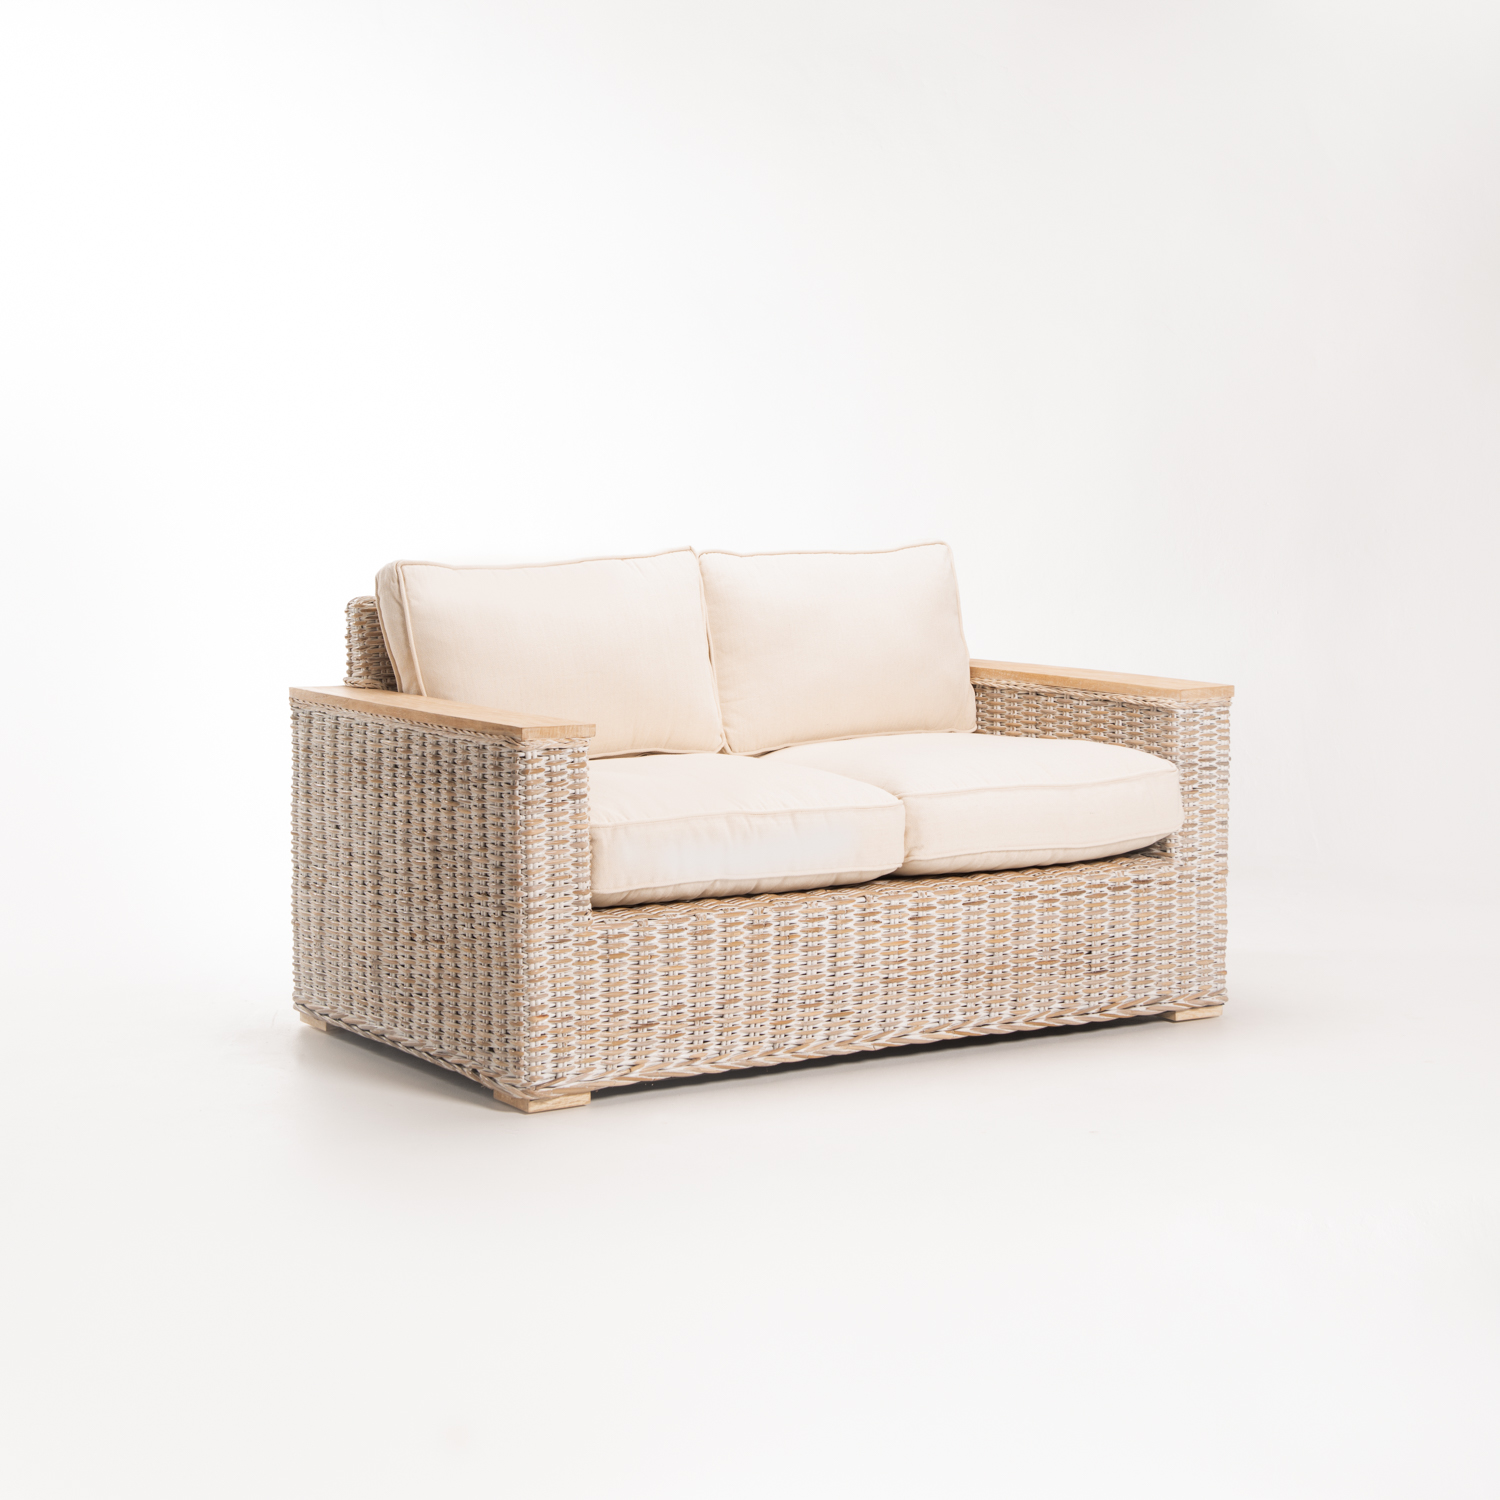 TEGAL KUBU WHITEWASH 2 SEATER